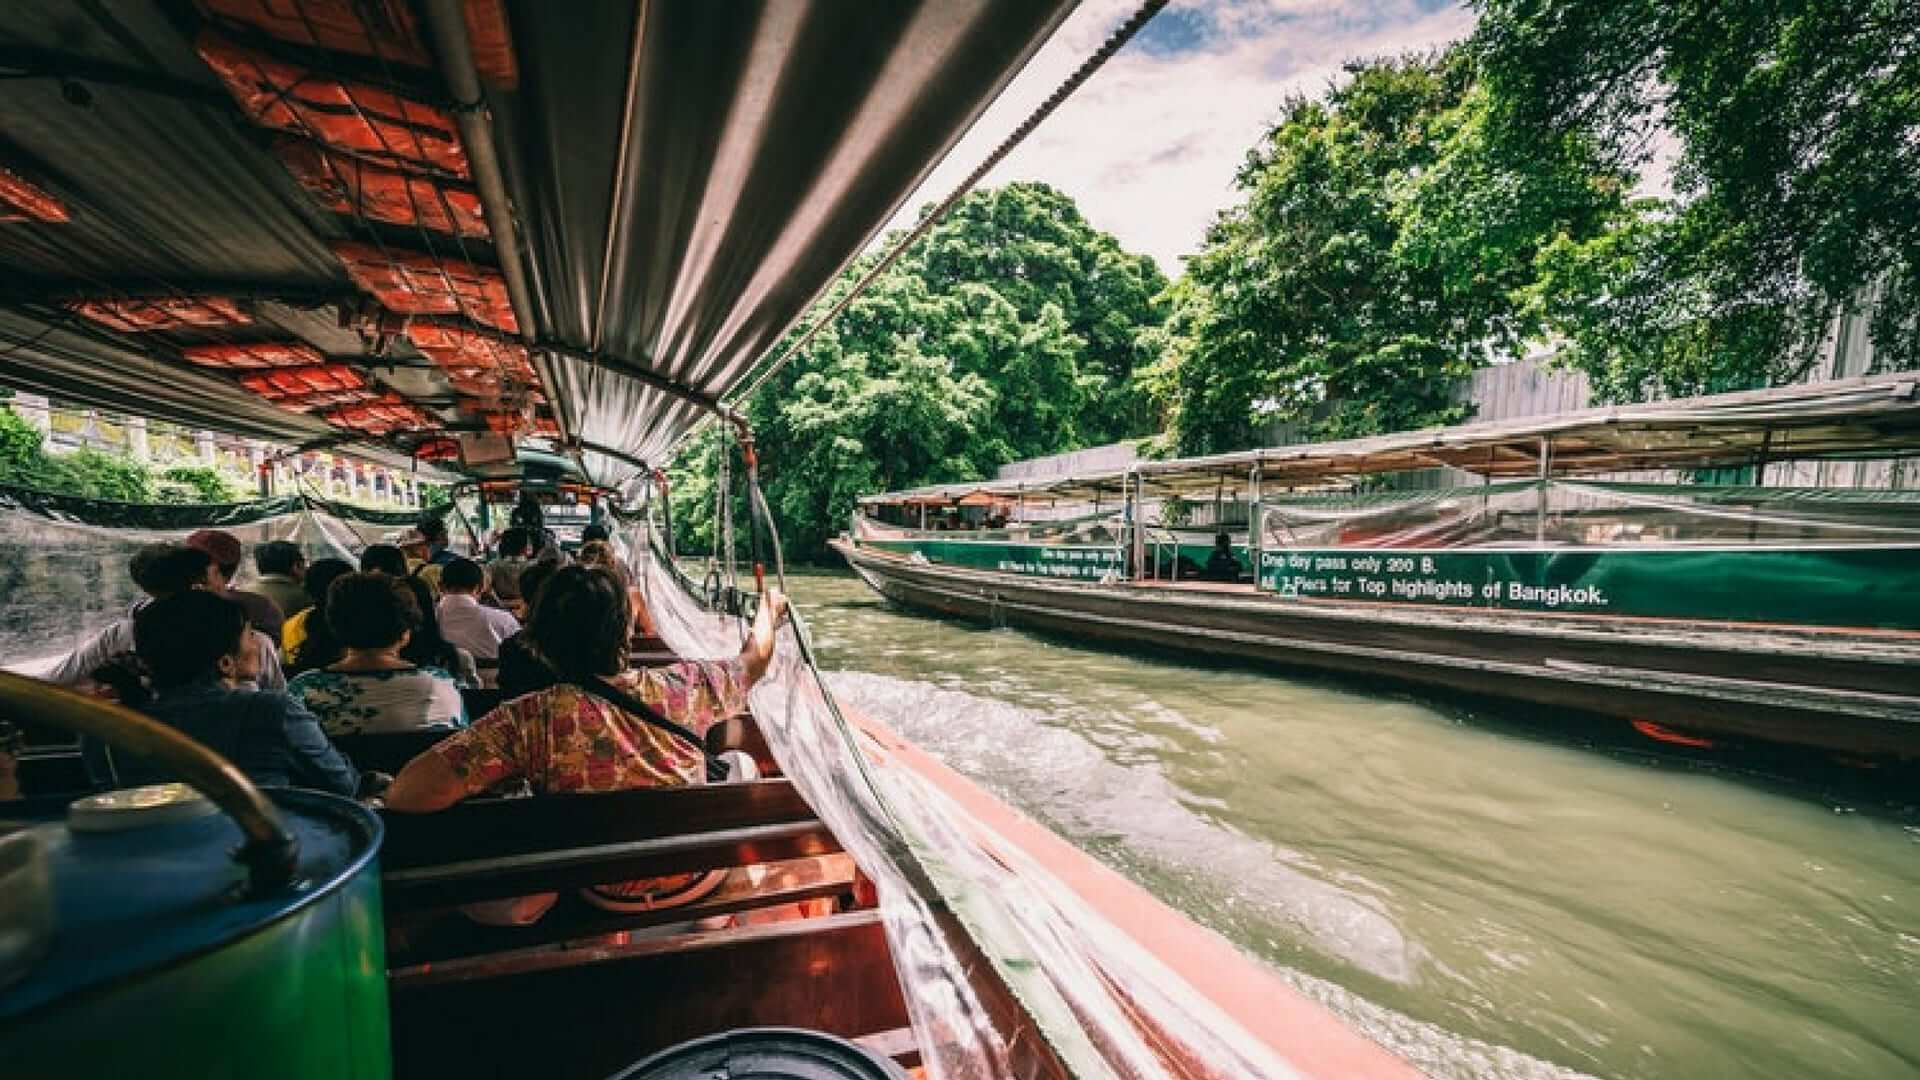 A picture made from a sailing boat of another boat in a river in Bangkok.